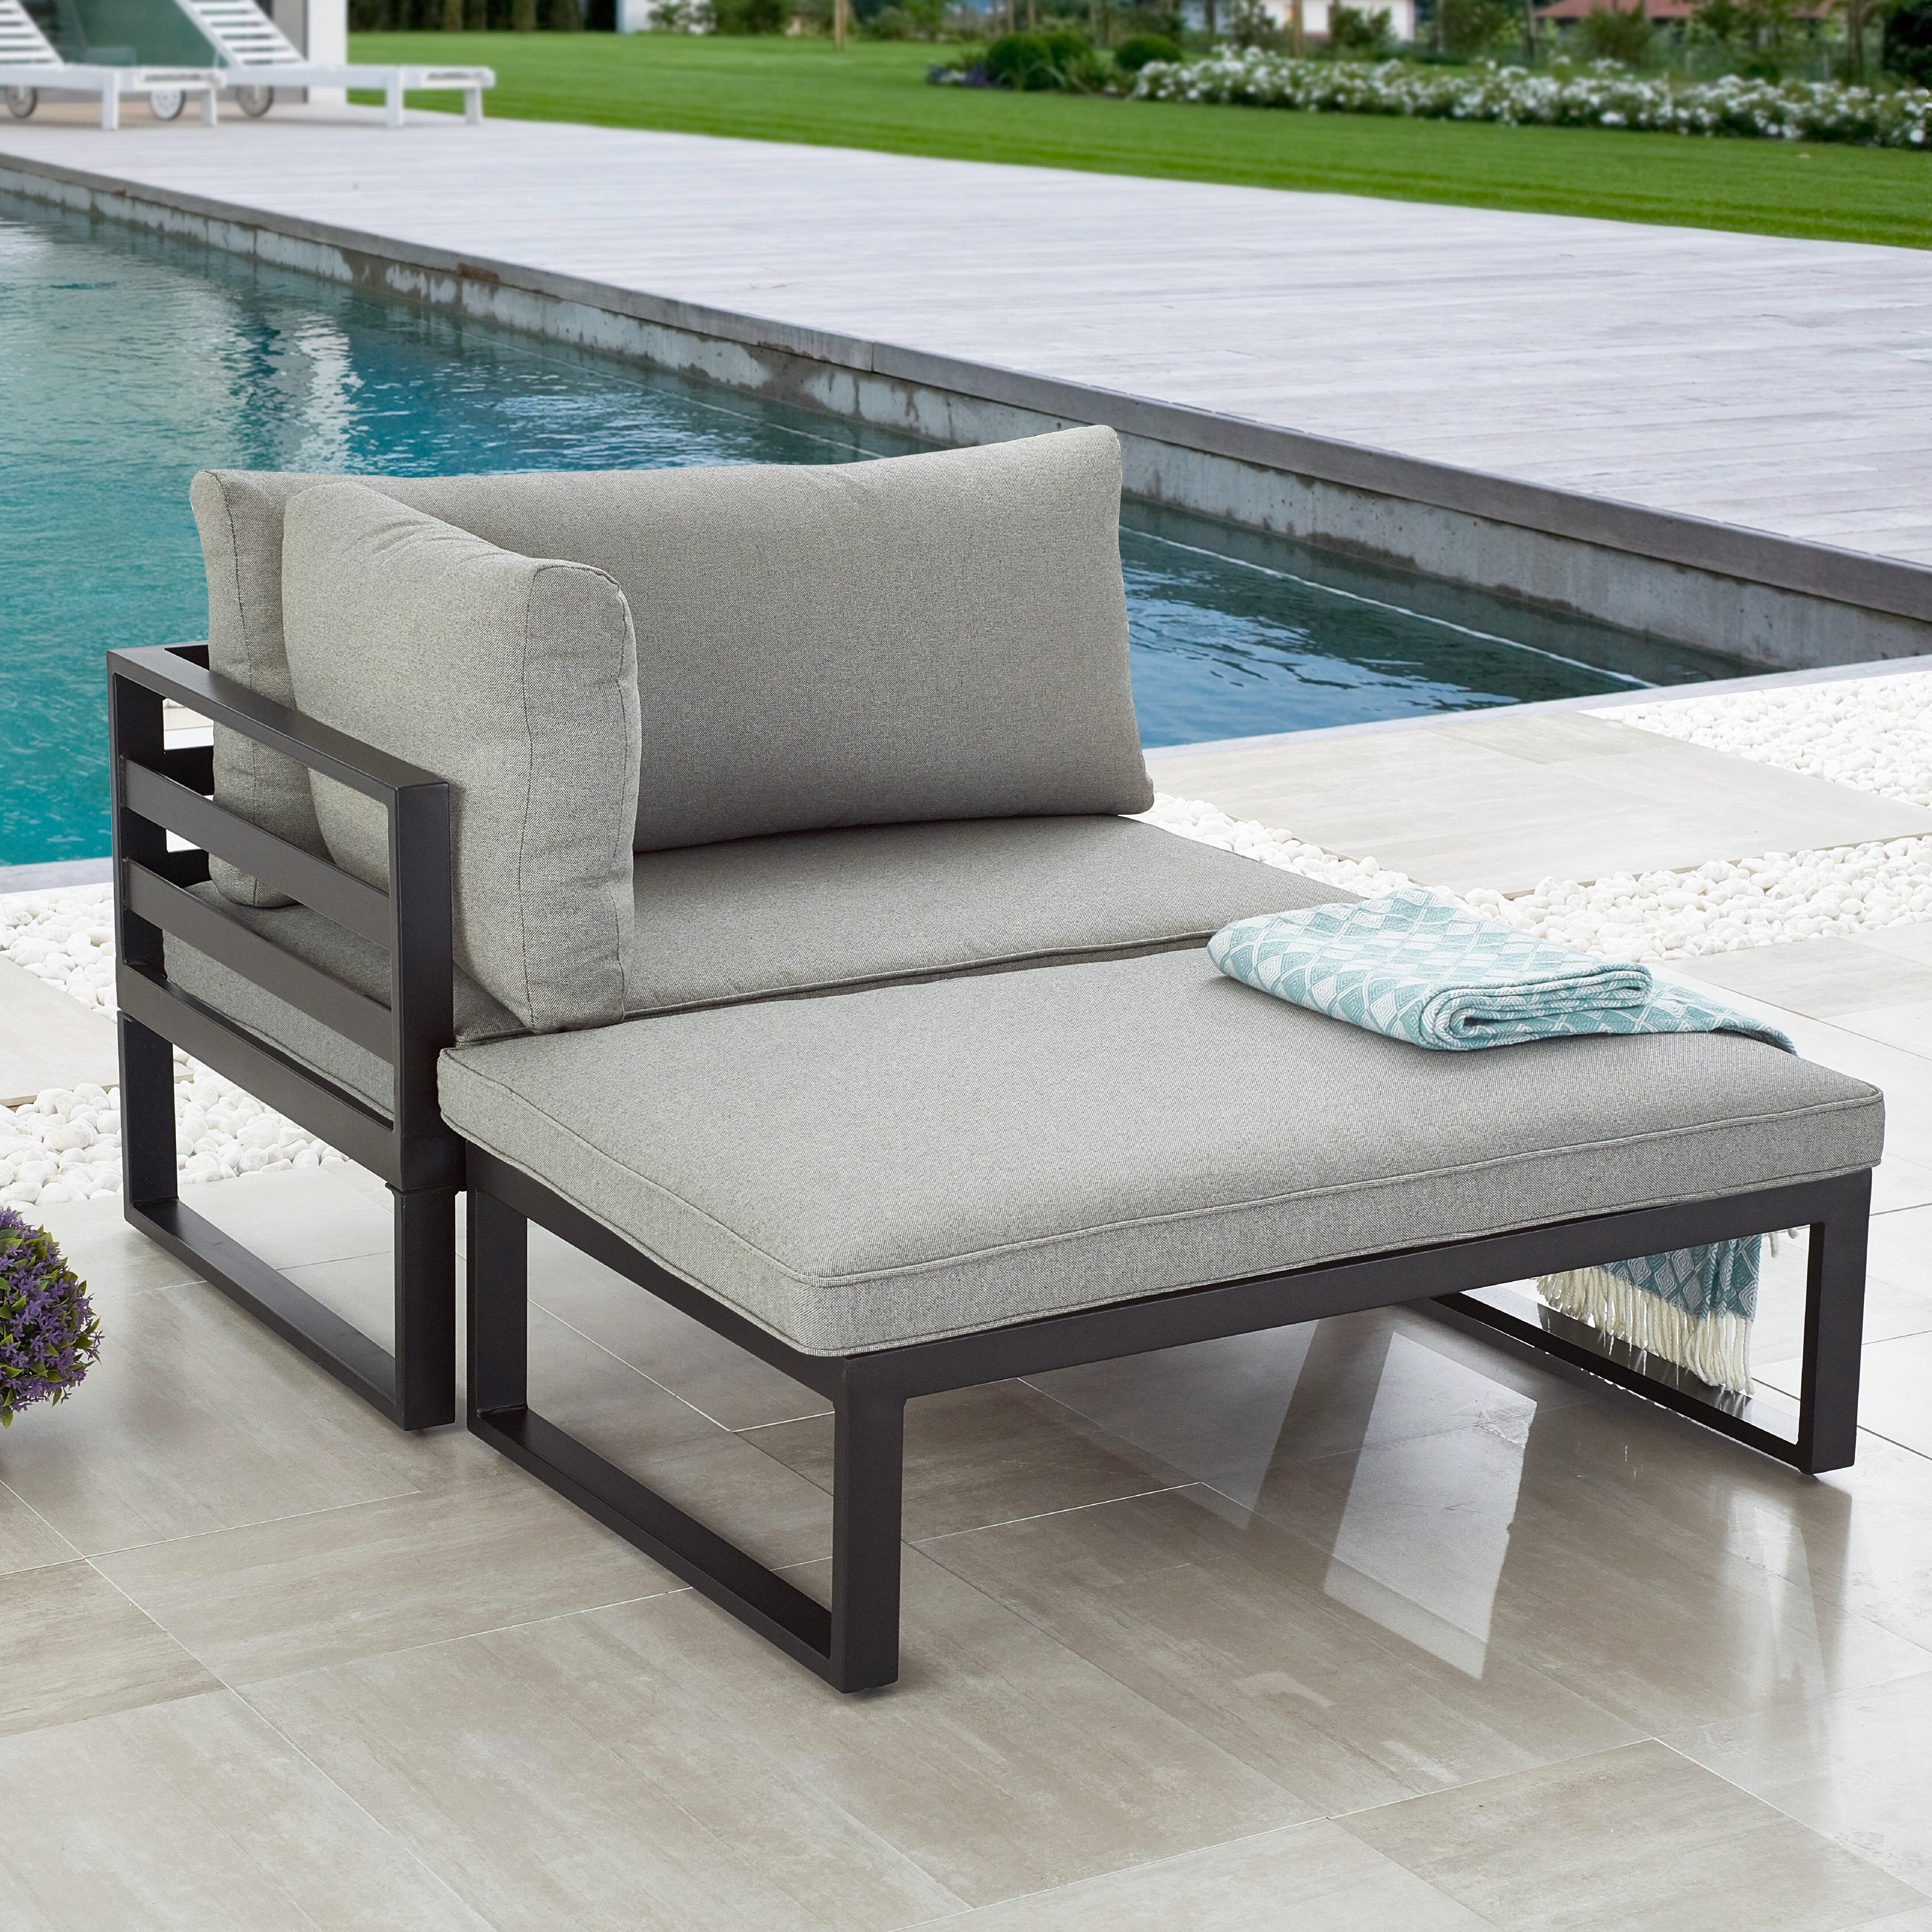 Ebern Designs Northview 2 Piece Seating Group With Cushions Reviews Wayfair Ca